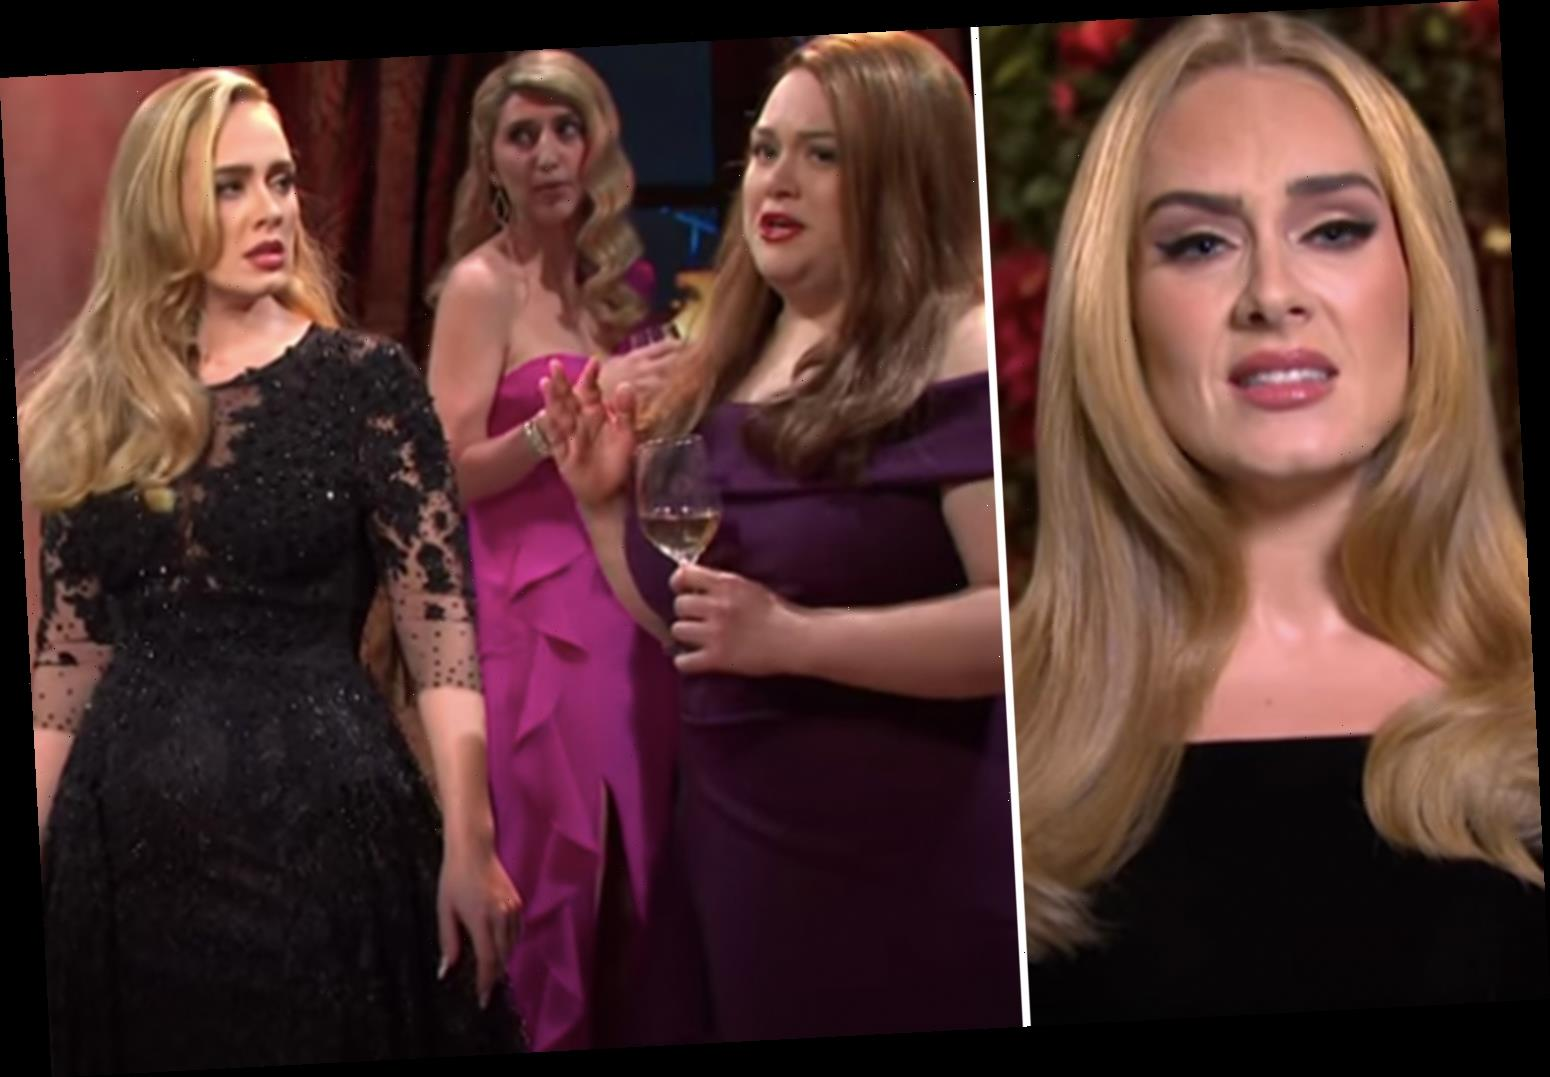 Adele jokes she's signed up for Love Island as she pokes fun at her divorce in Saturday Night Live sketch